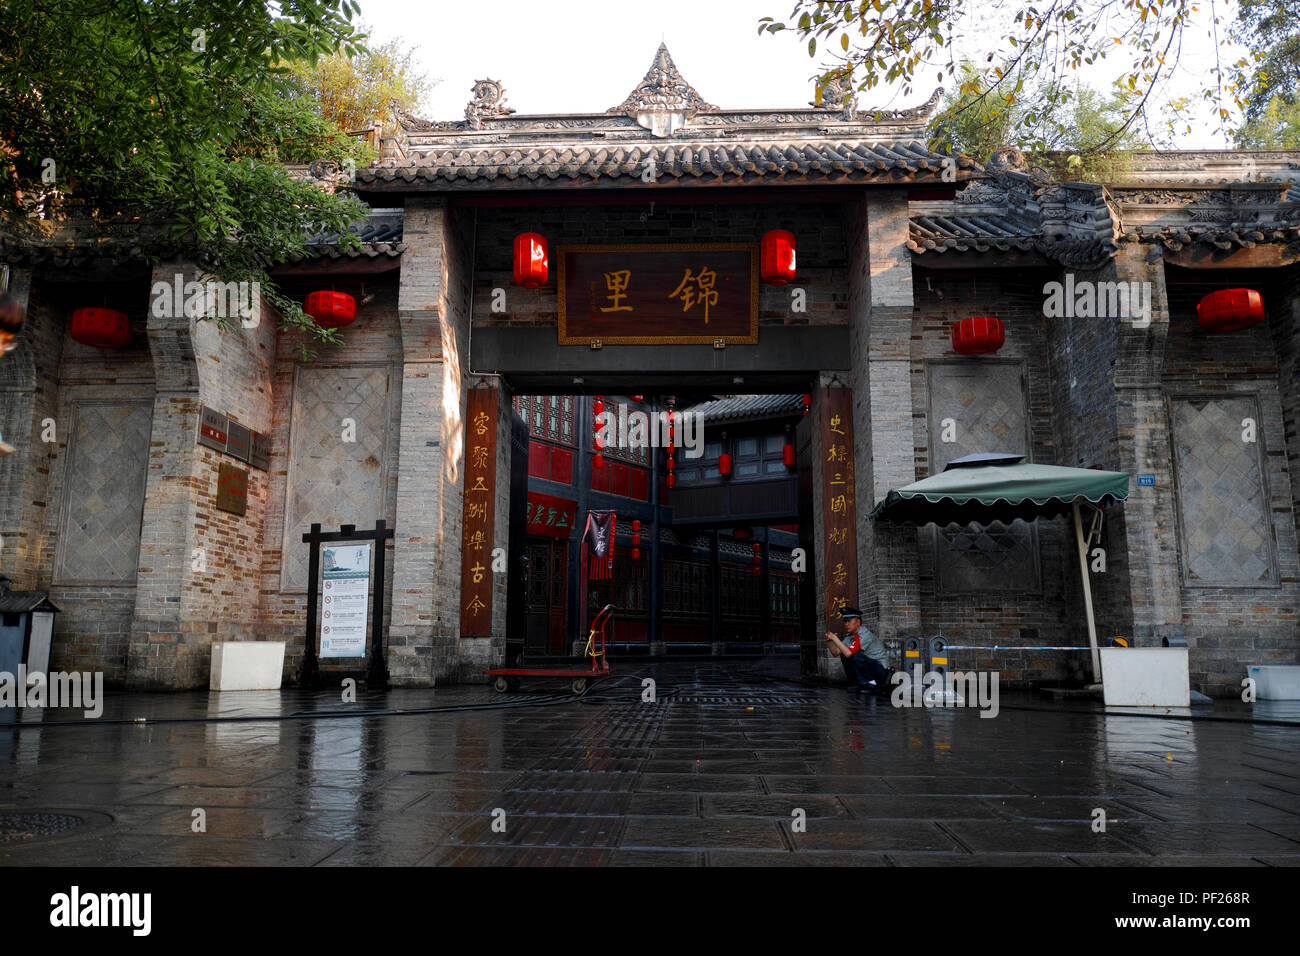 Life in Chengdu, Sichuan, the largest city in south west China. Stock Photo